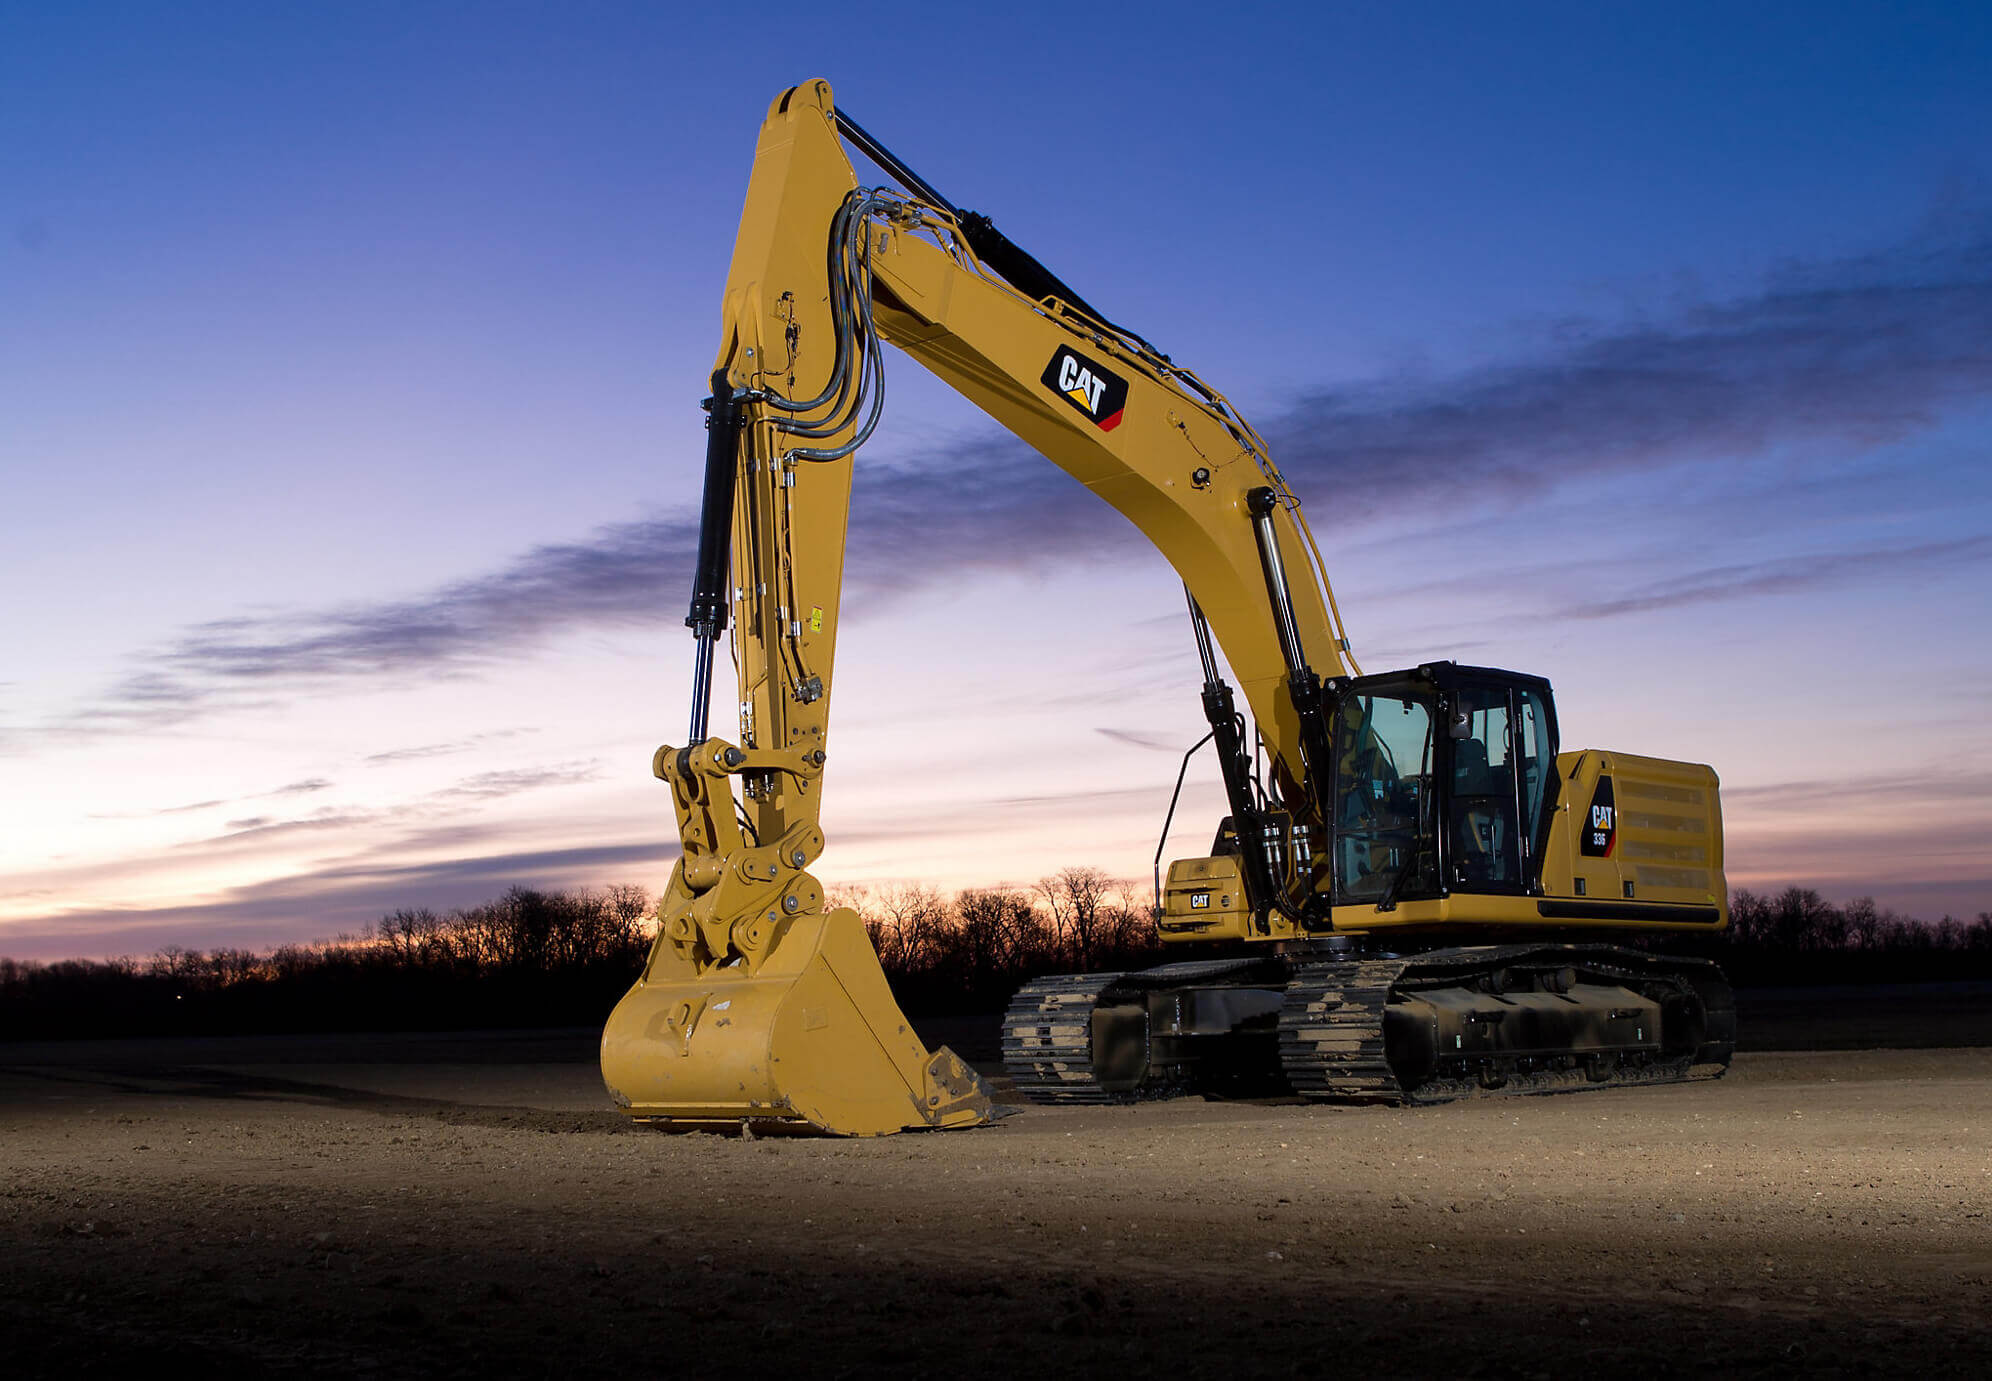 NEXT GENERATION CAT EXCAVATORS